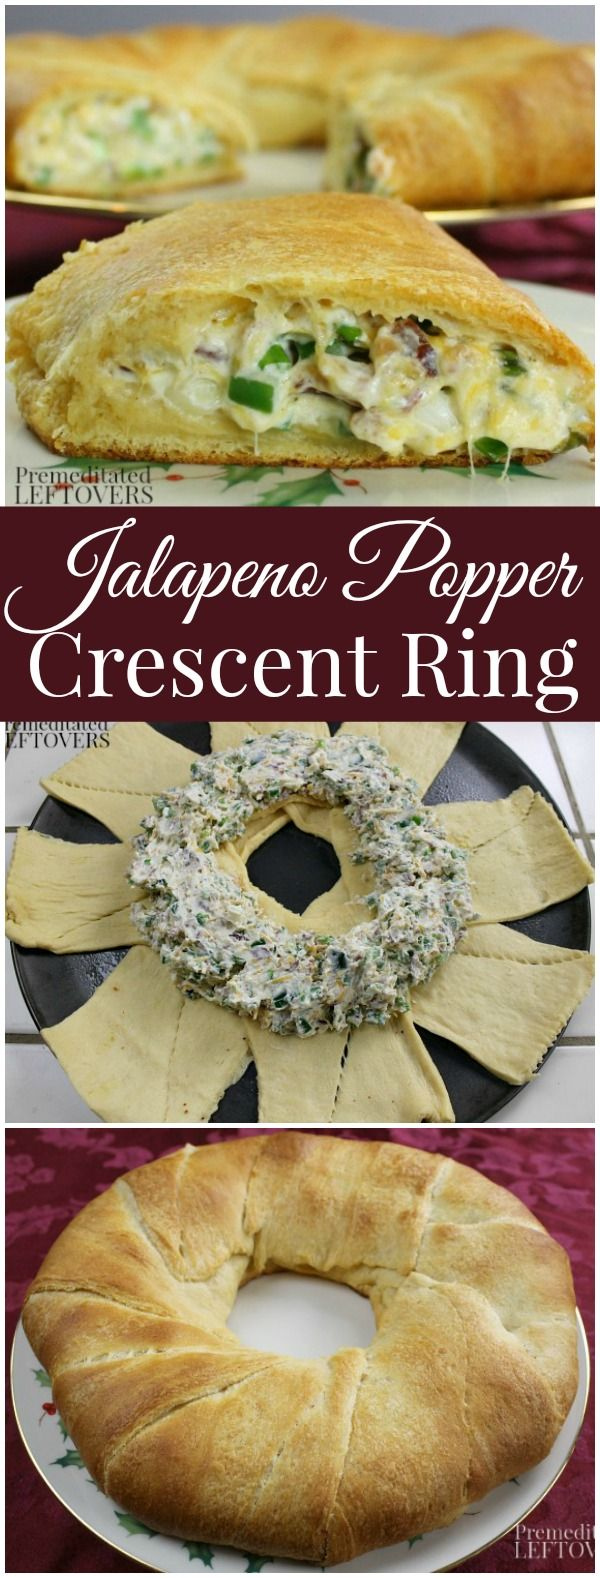 Jalapeno Popper Crescent Ring